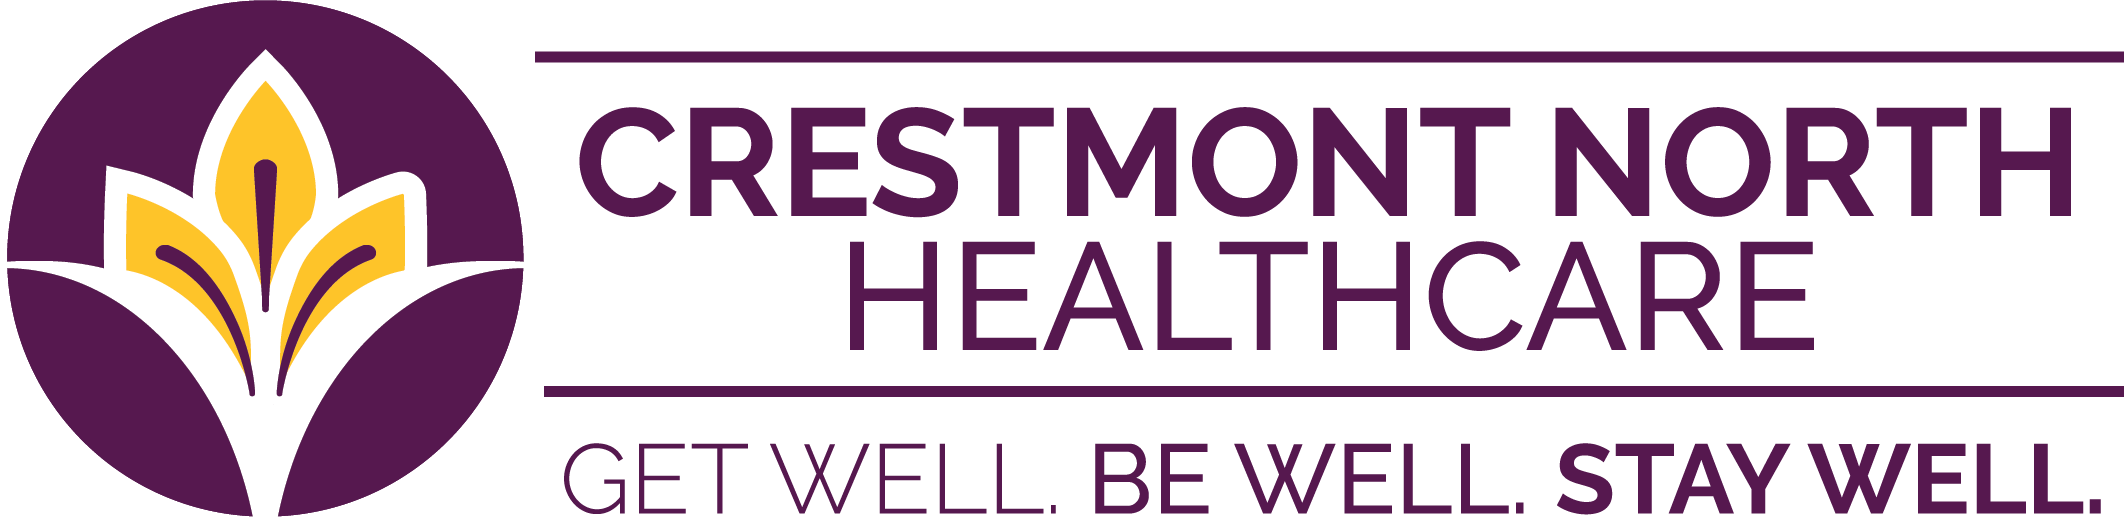 Crestmont North Healthcare